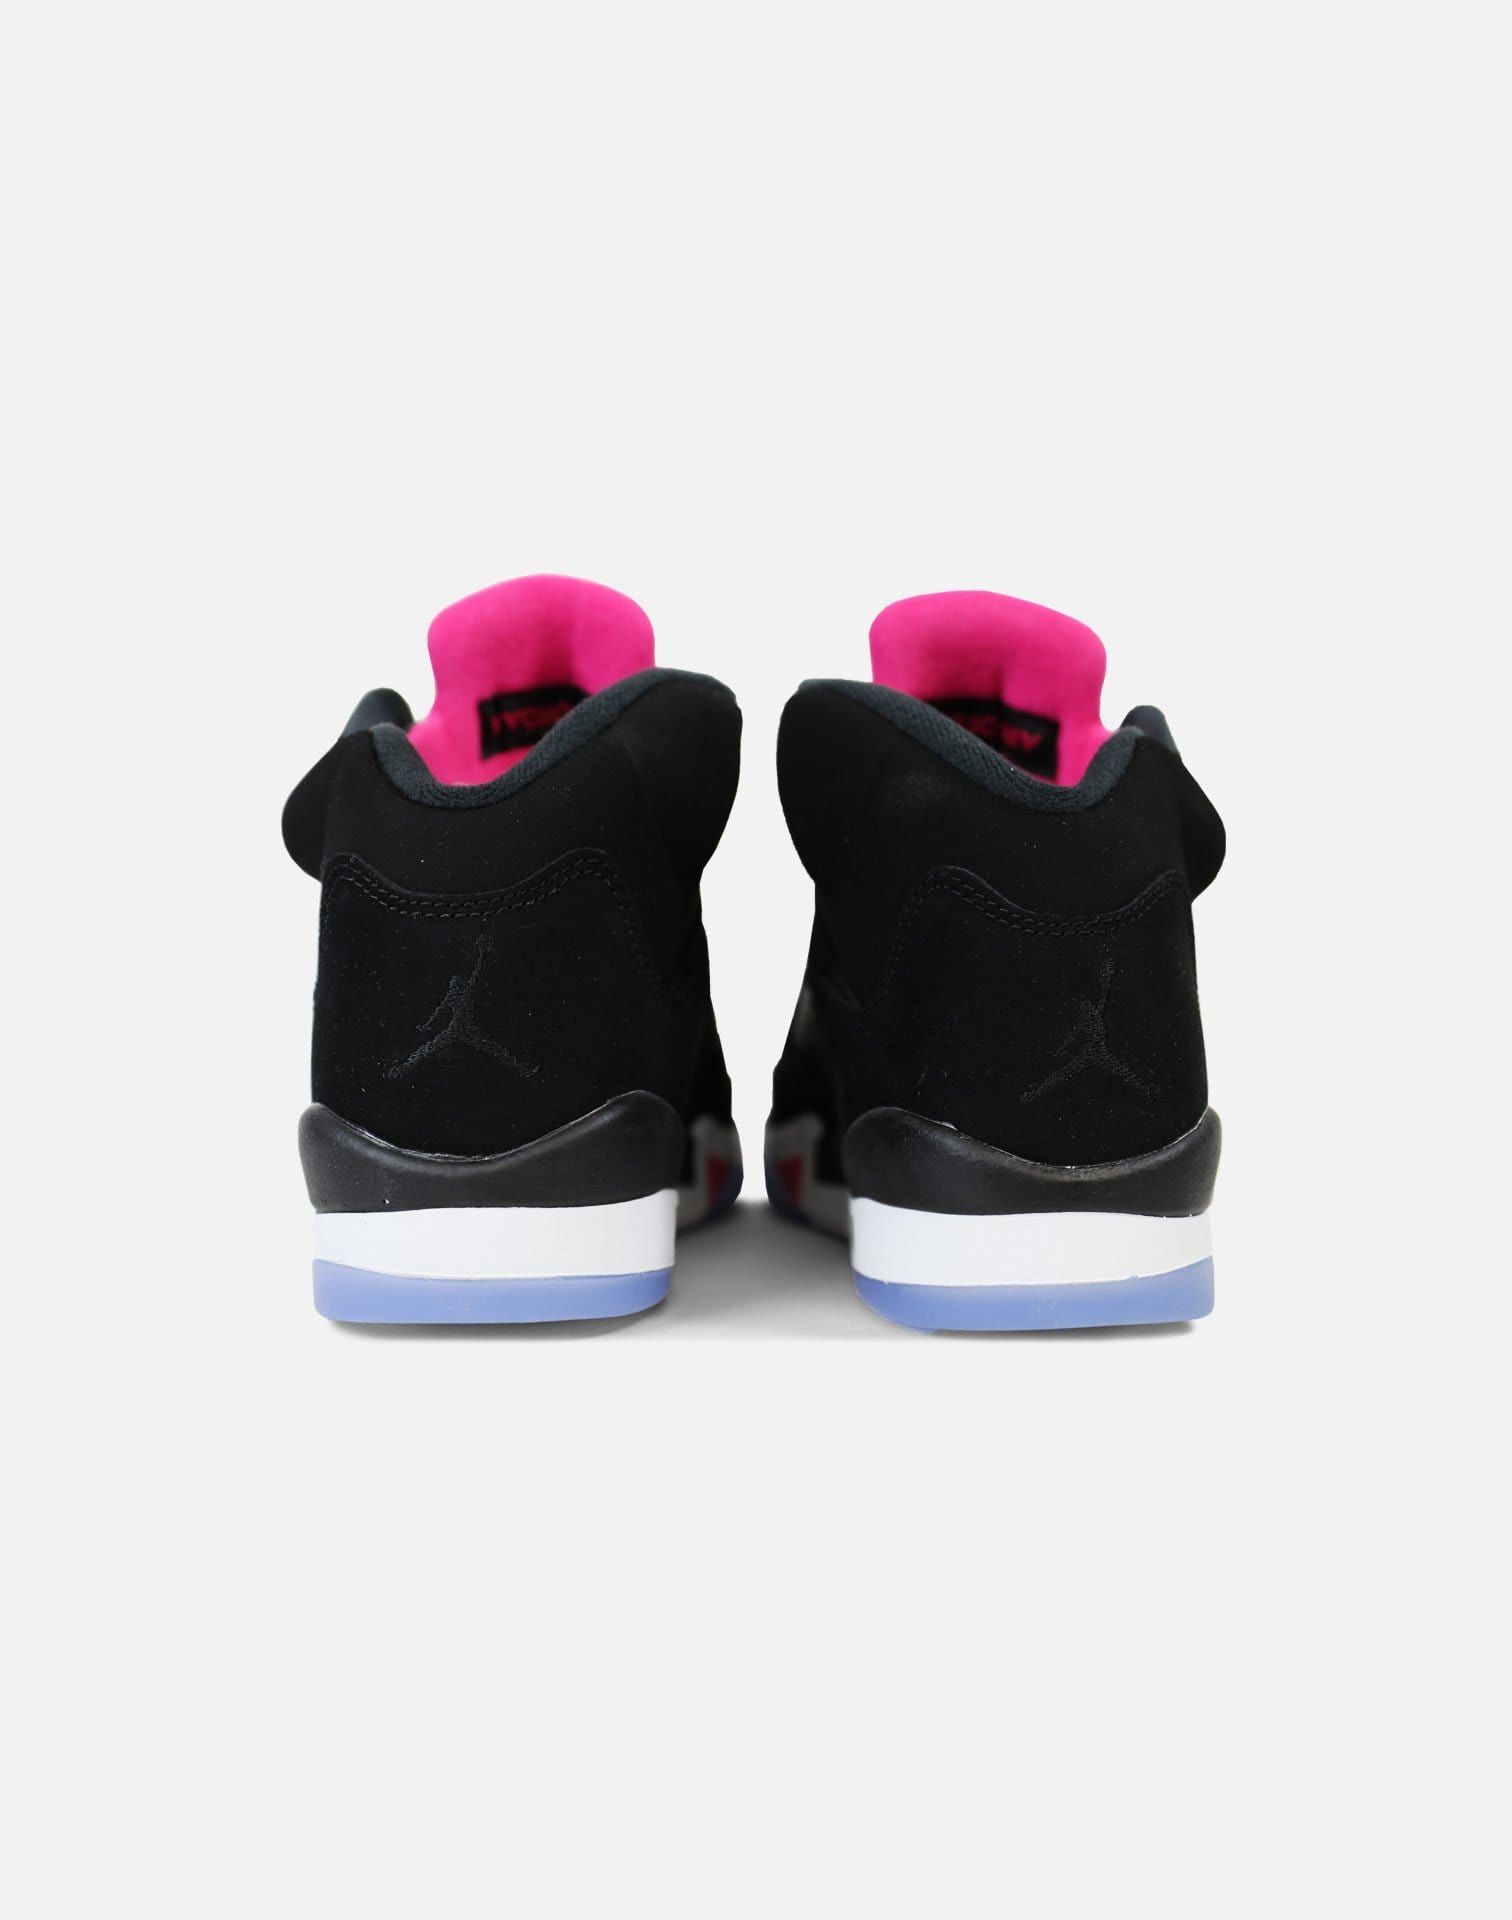 Jordan Air Jordan 5 Retro 'Deadly Pink' Grade-School (Black/Black-Deadly Pink-White)